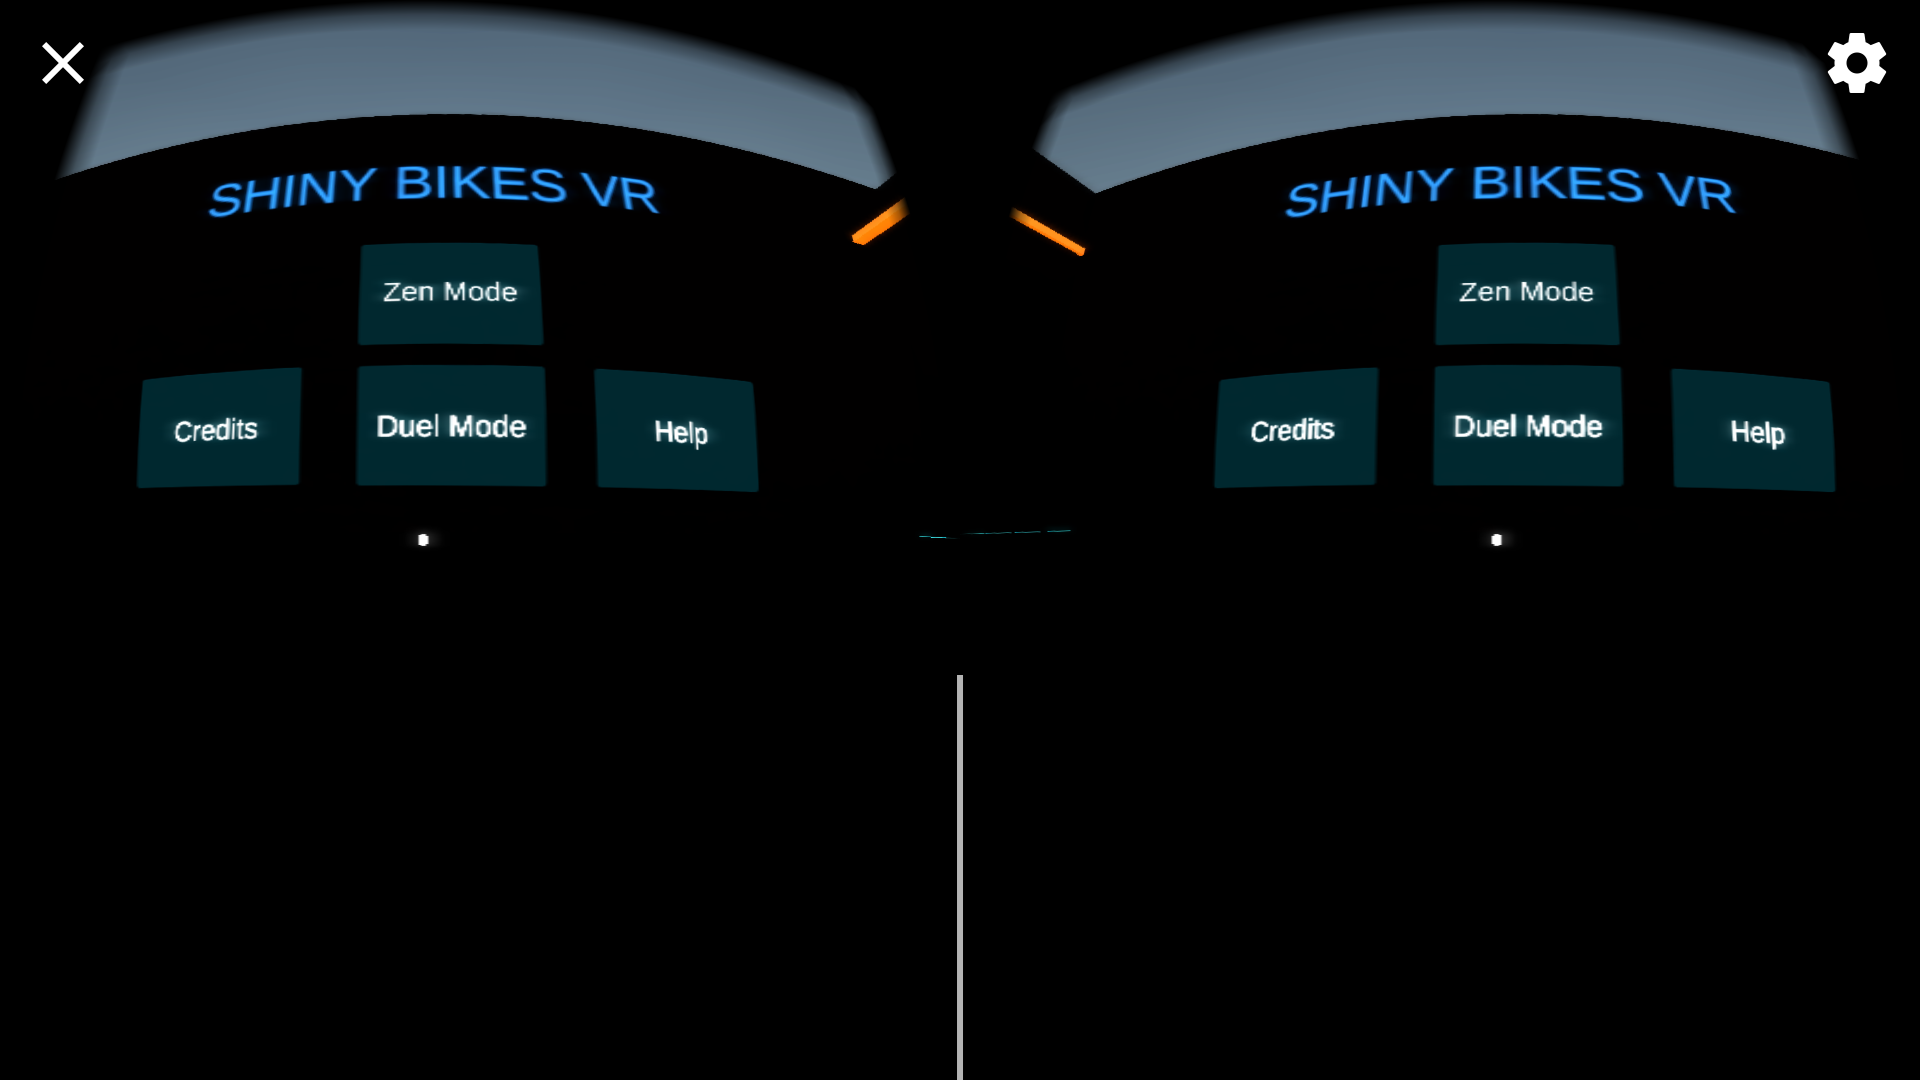 Tron for VR